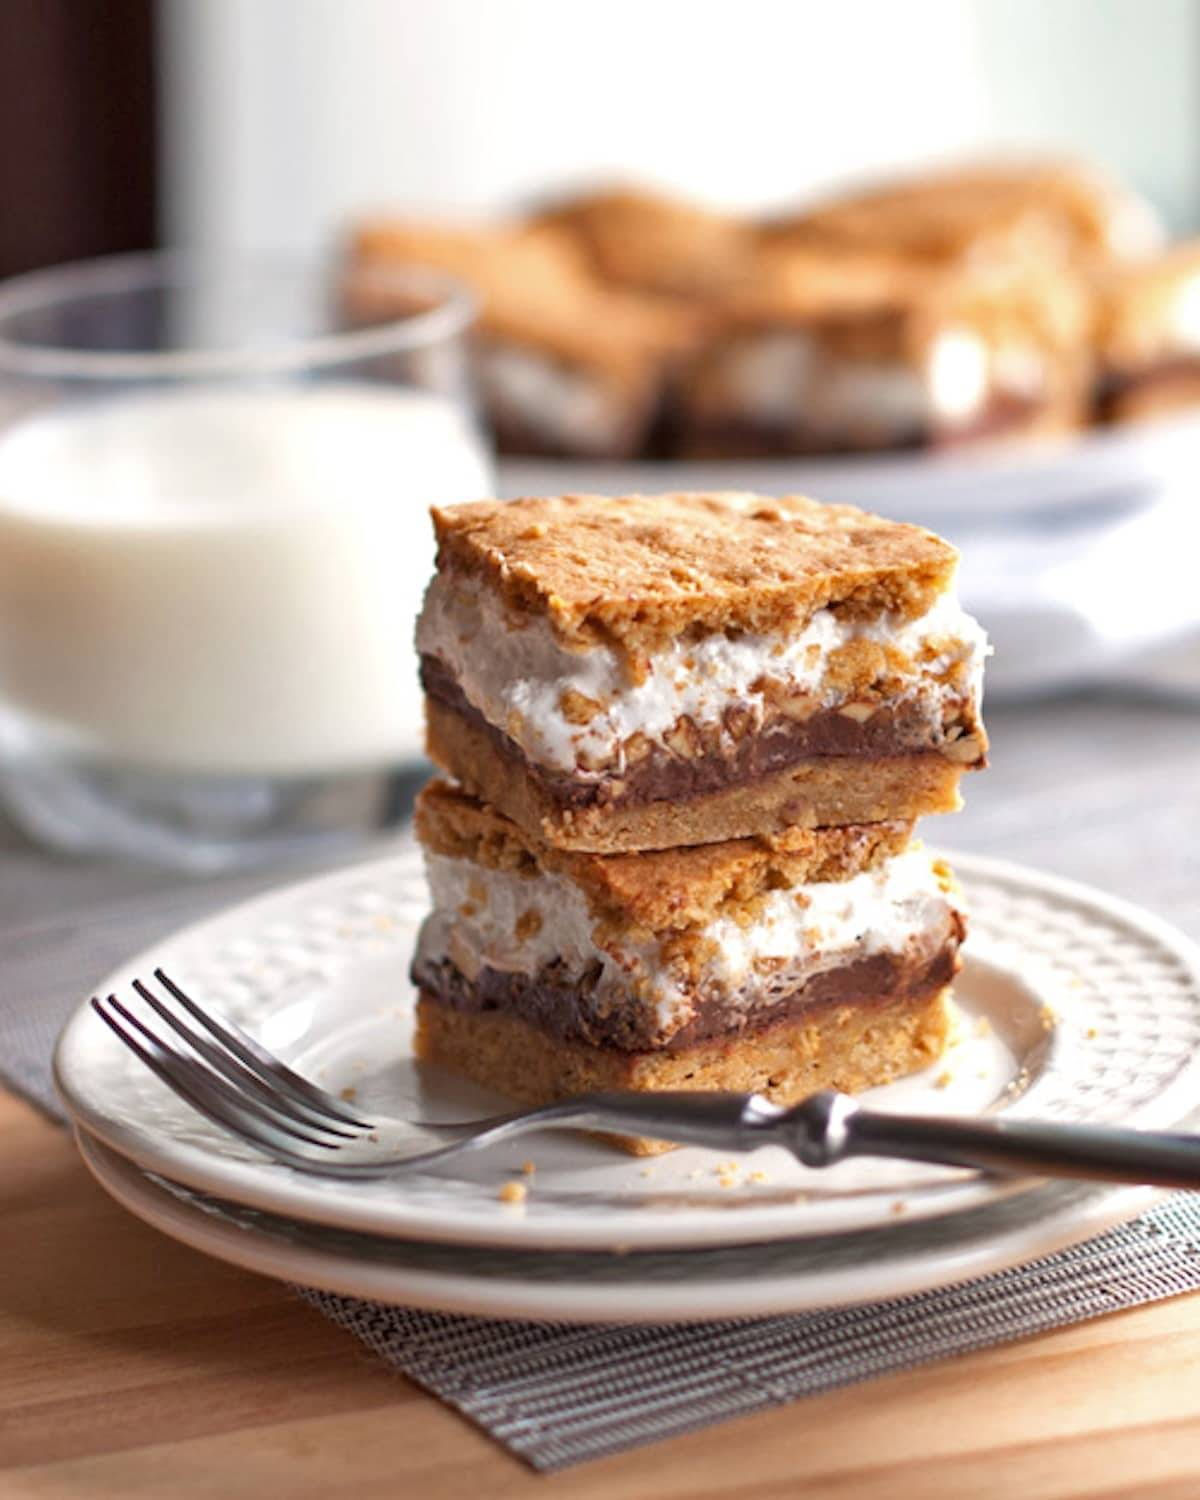 These s'mores bars have peanut butter layered in between marshmallow fluff, chocolate, and a graham cookie base. Just like s'mores! | pinchofyum.com